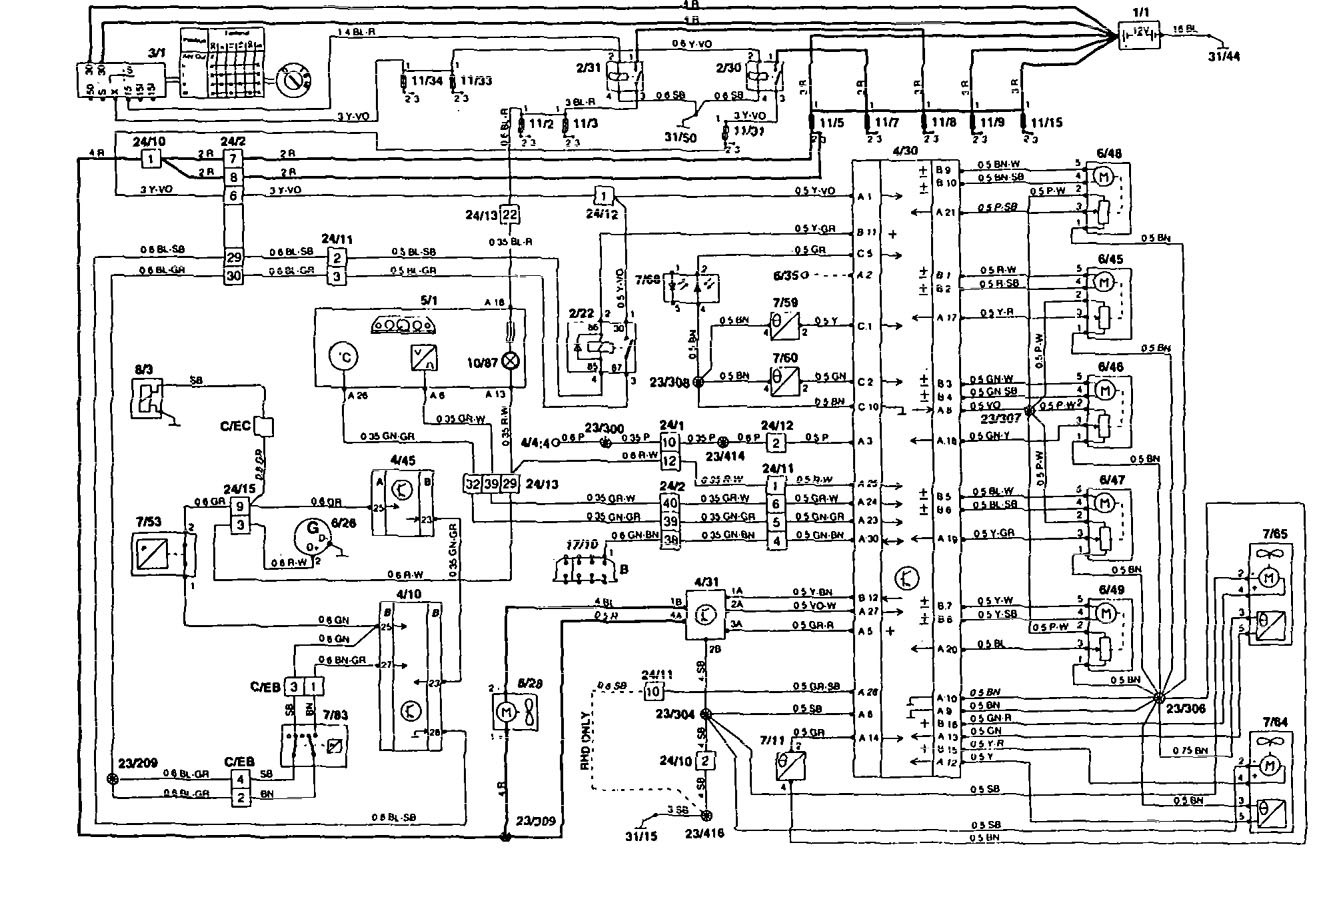 1994 volvo 850 wiring diagram detailed schematics diagram rh  highcliffemedicalcentre com volvo wiring diagrams.com volvo wiring diagrams  volvo xc70